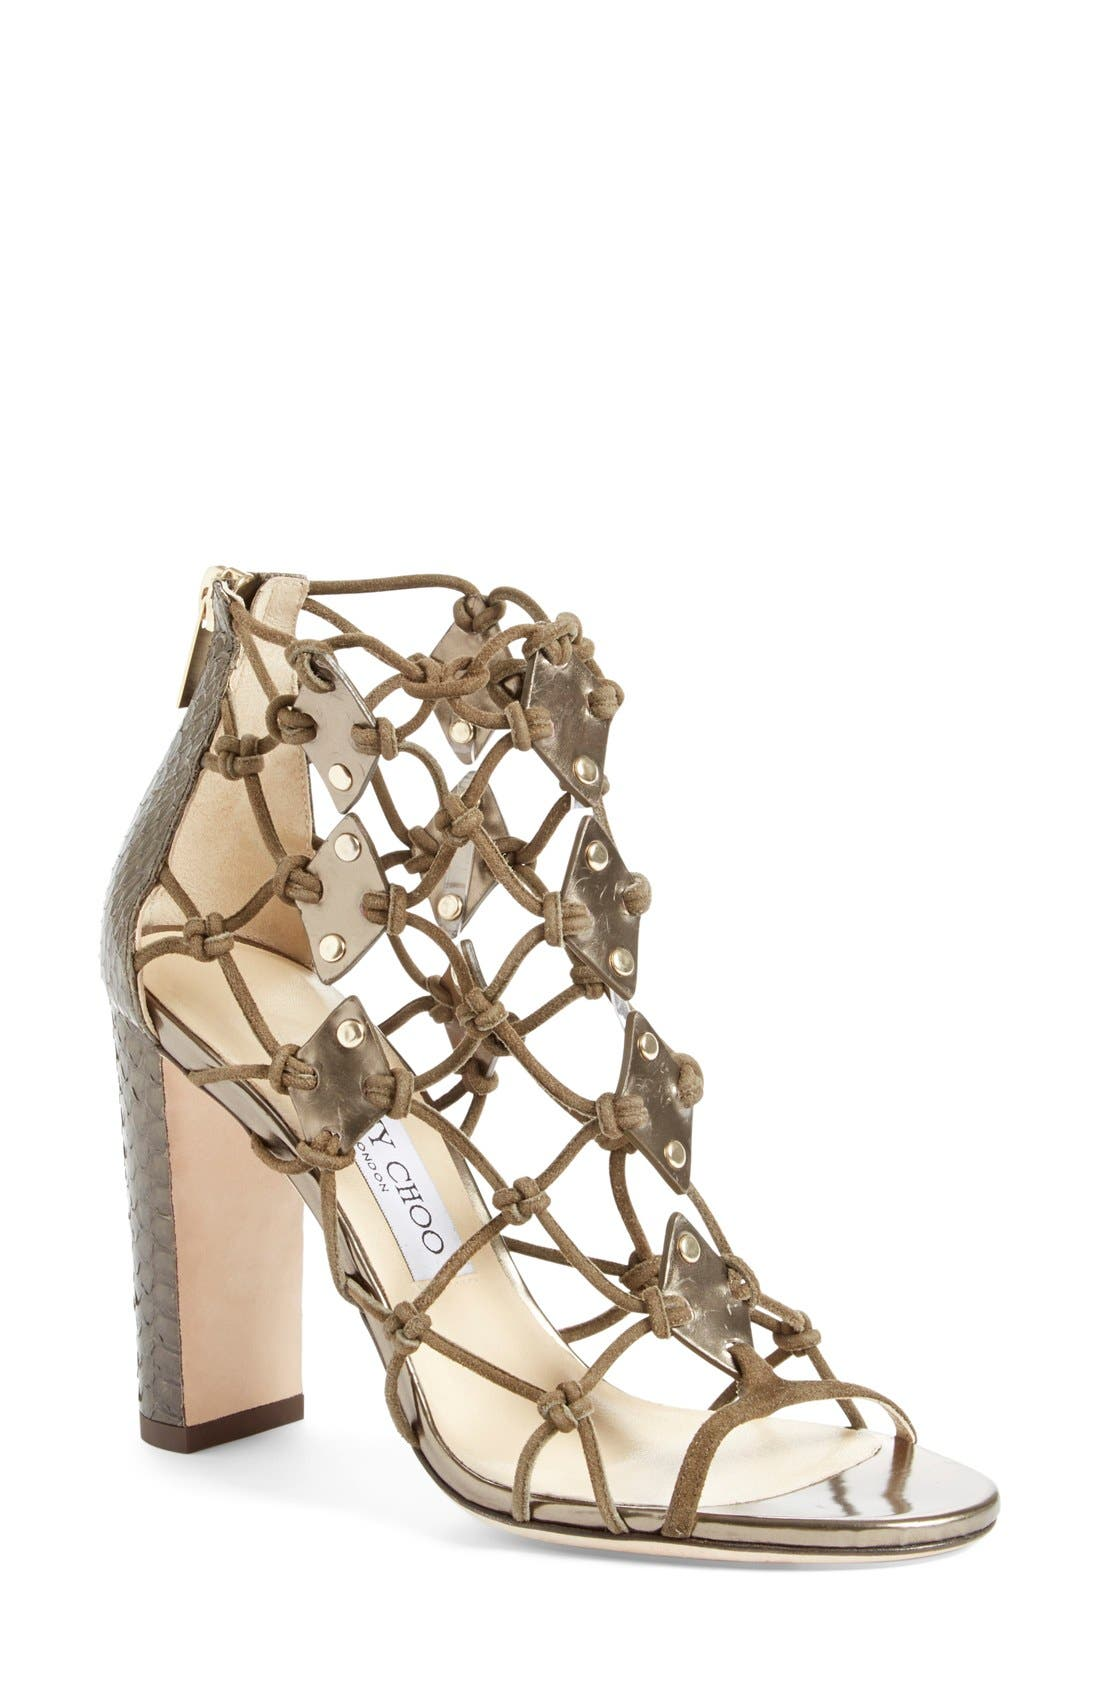 Main Image - Jimmy Choo 'Trickle' Caged Sandal (Women)